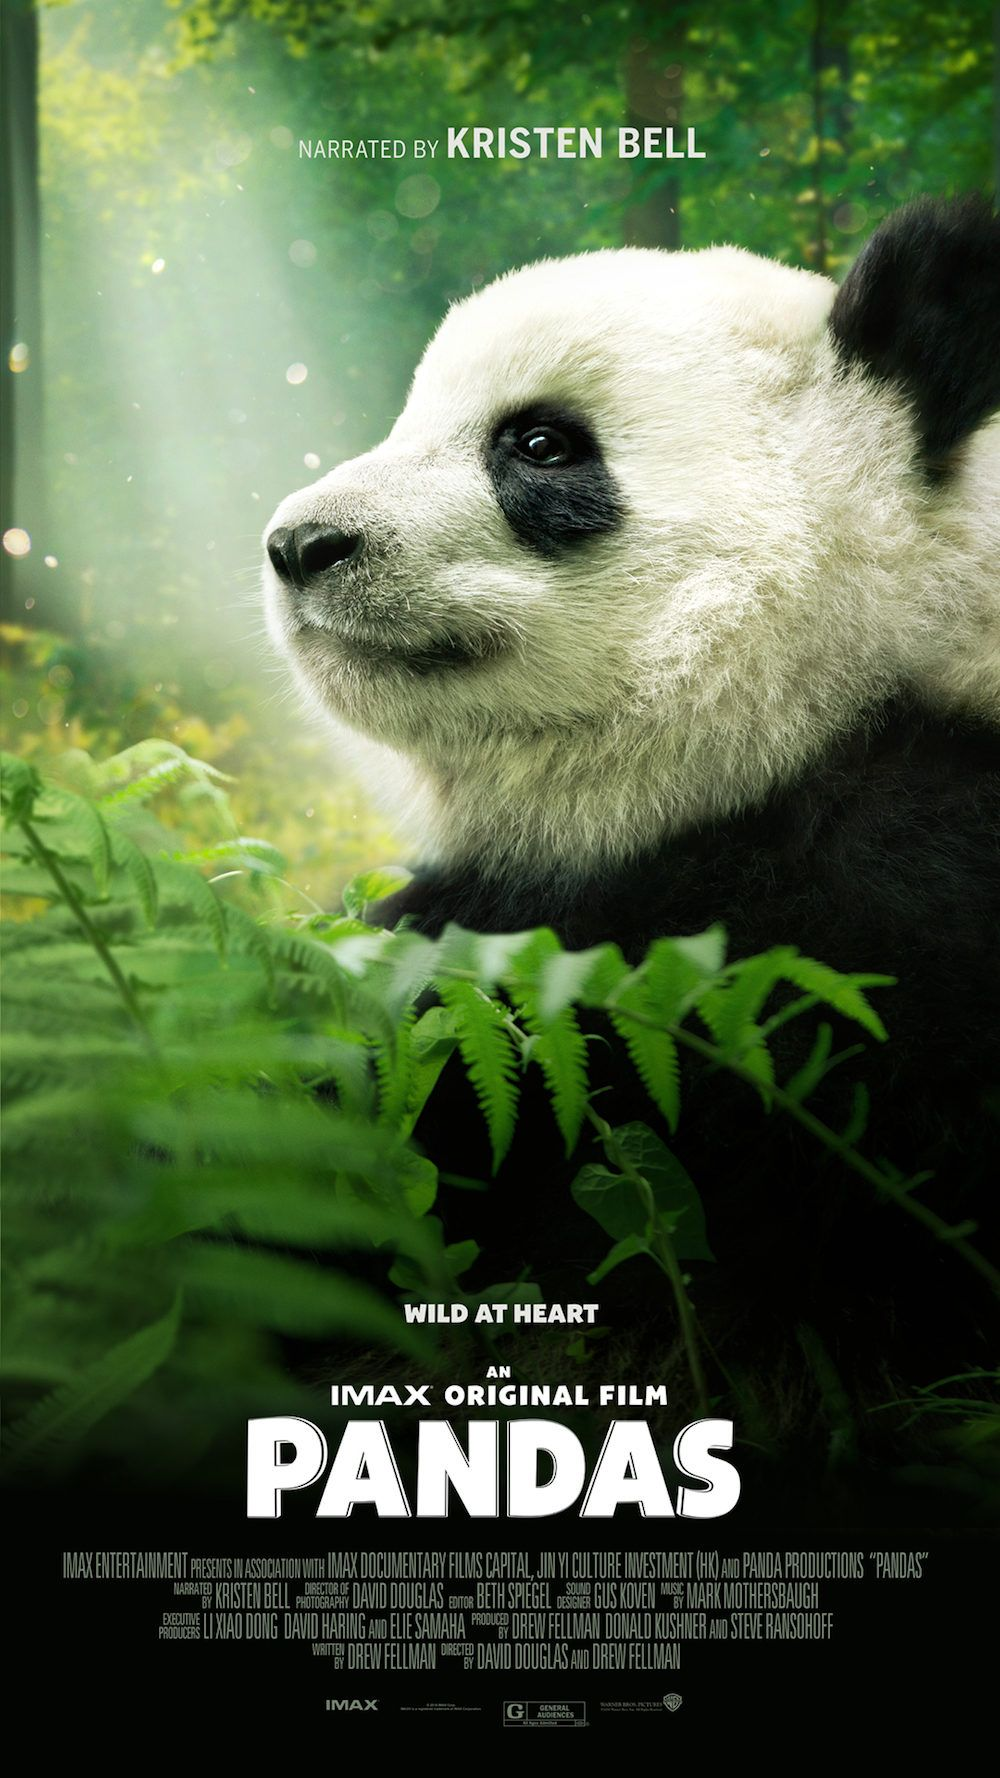 Pandas Movie With Kristen Bell With Images Panda Movies Panda